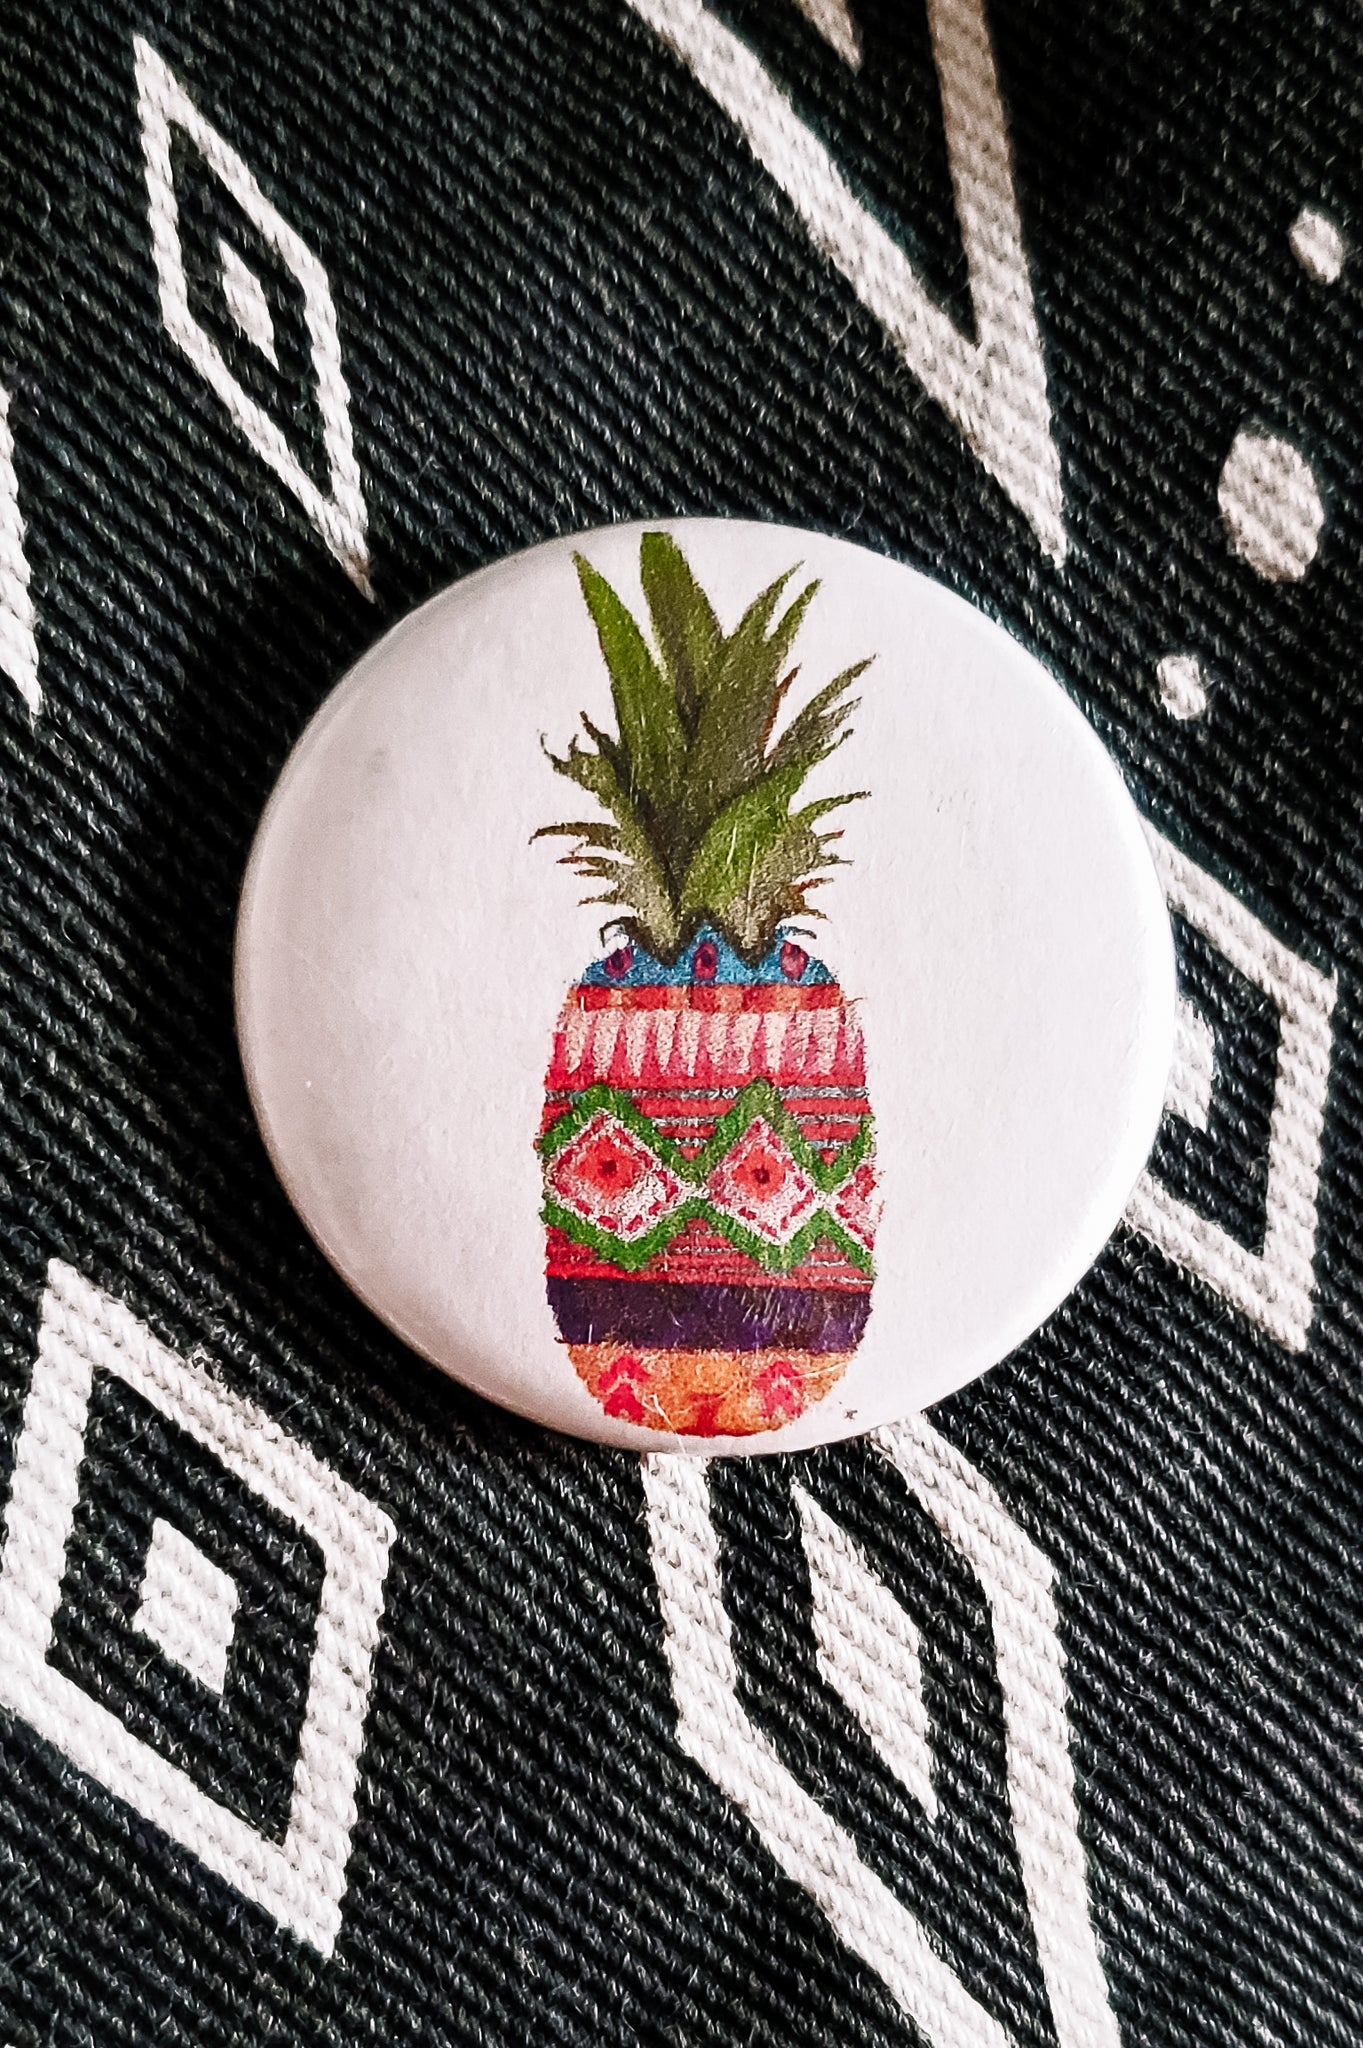 Patterned Pineapple Button Pin